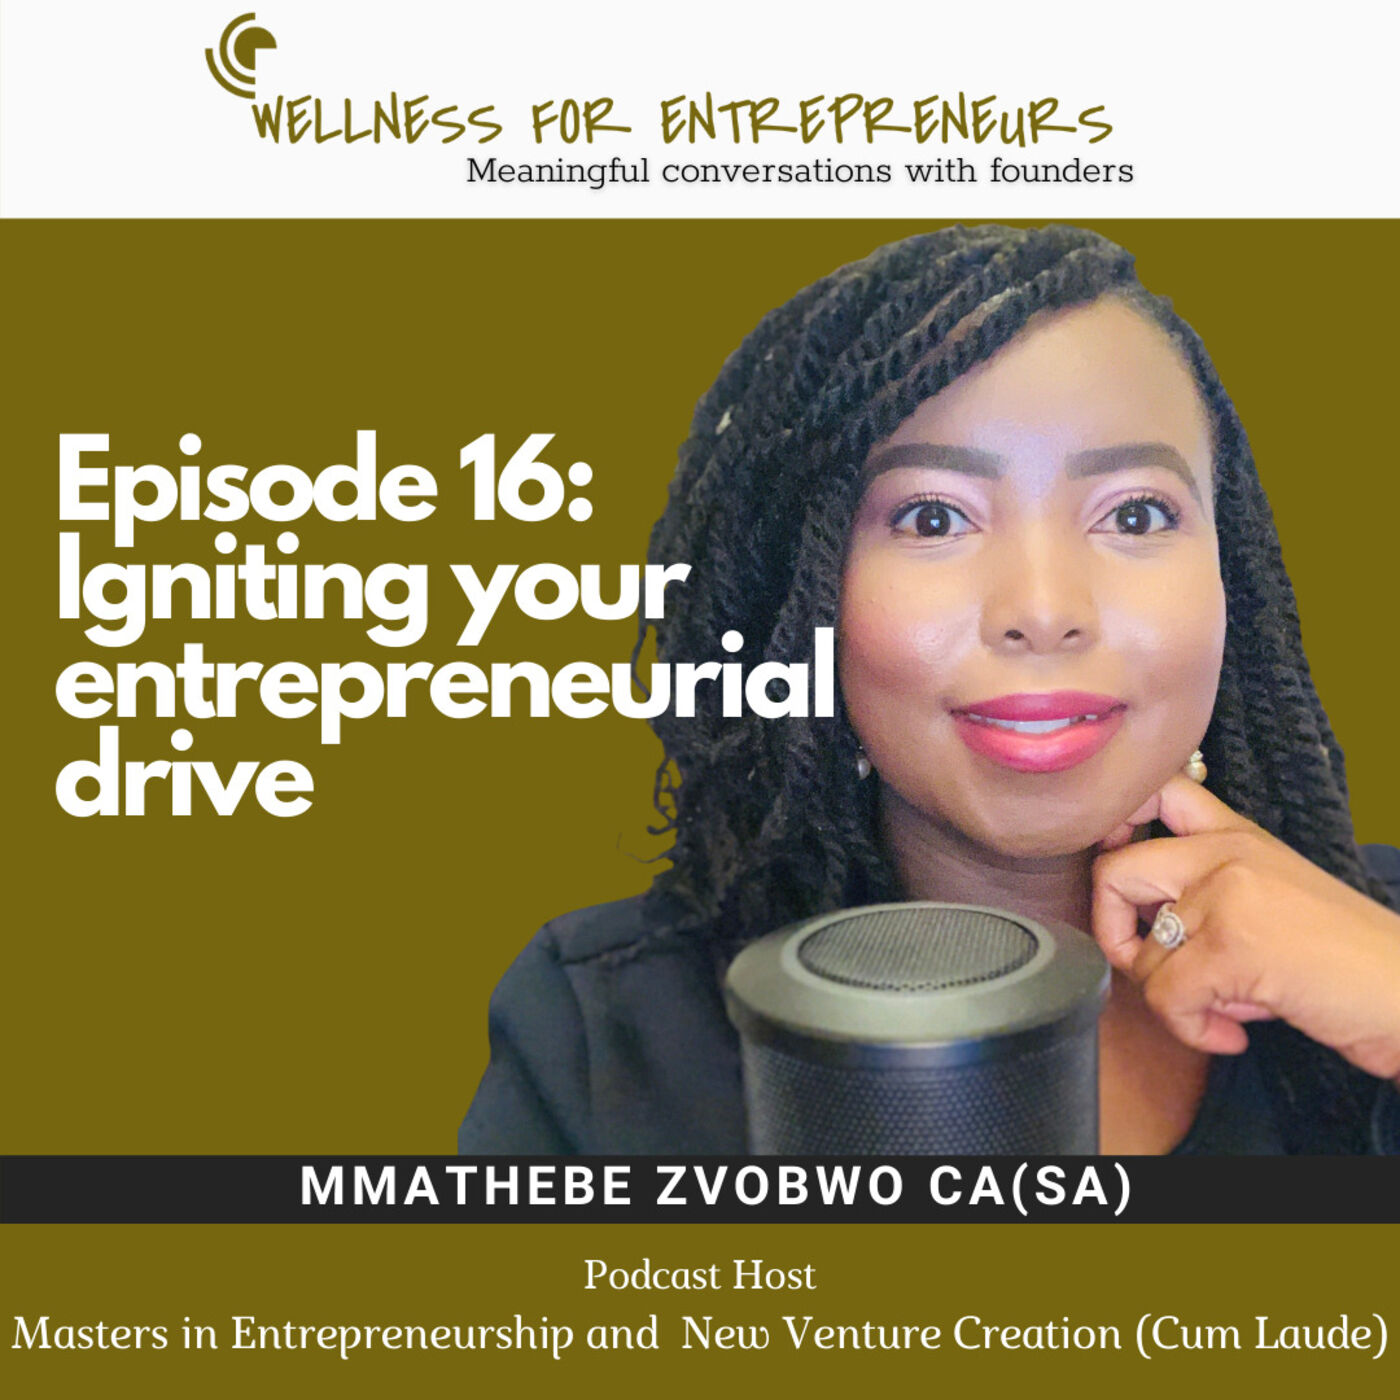 Episode 16: Igniting your entrepreneurial drive